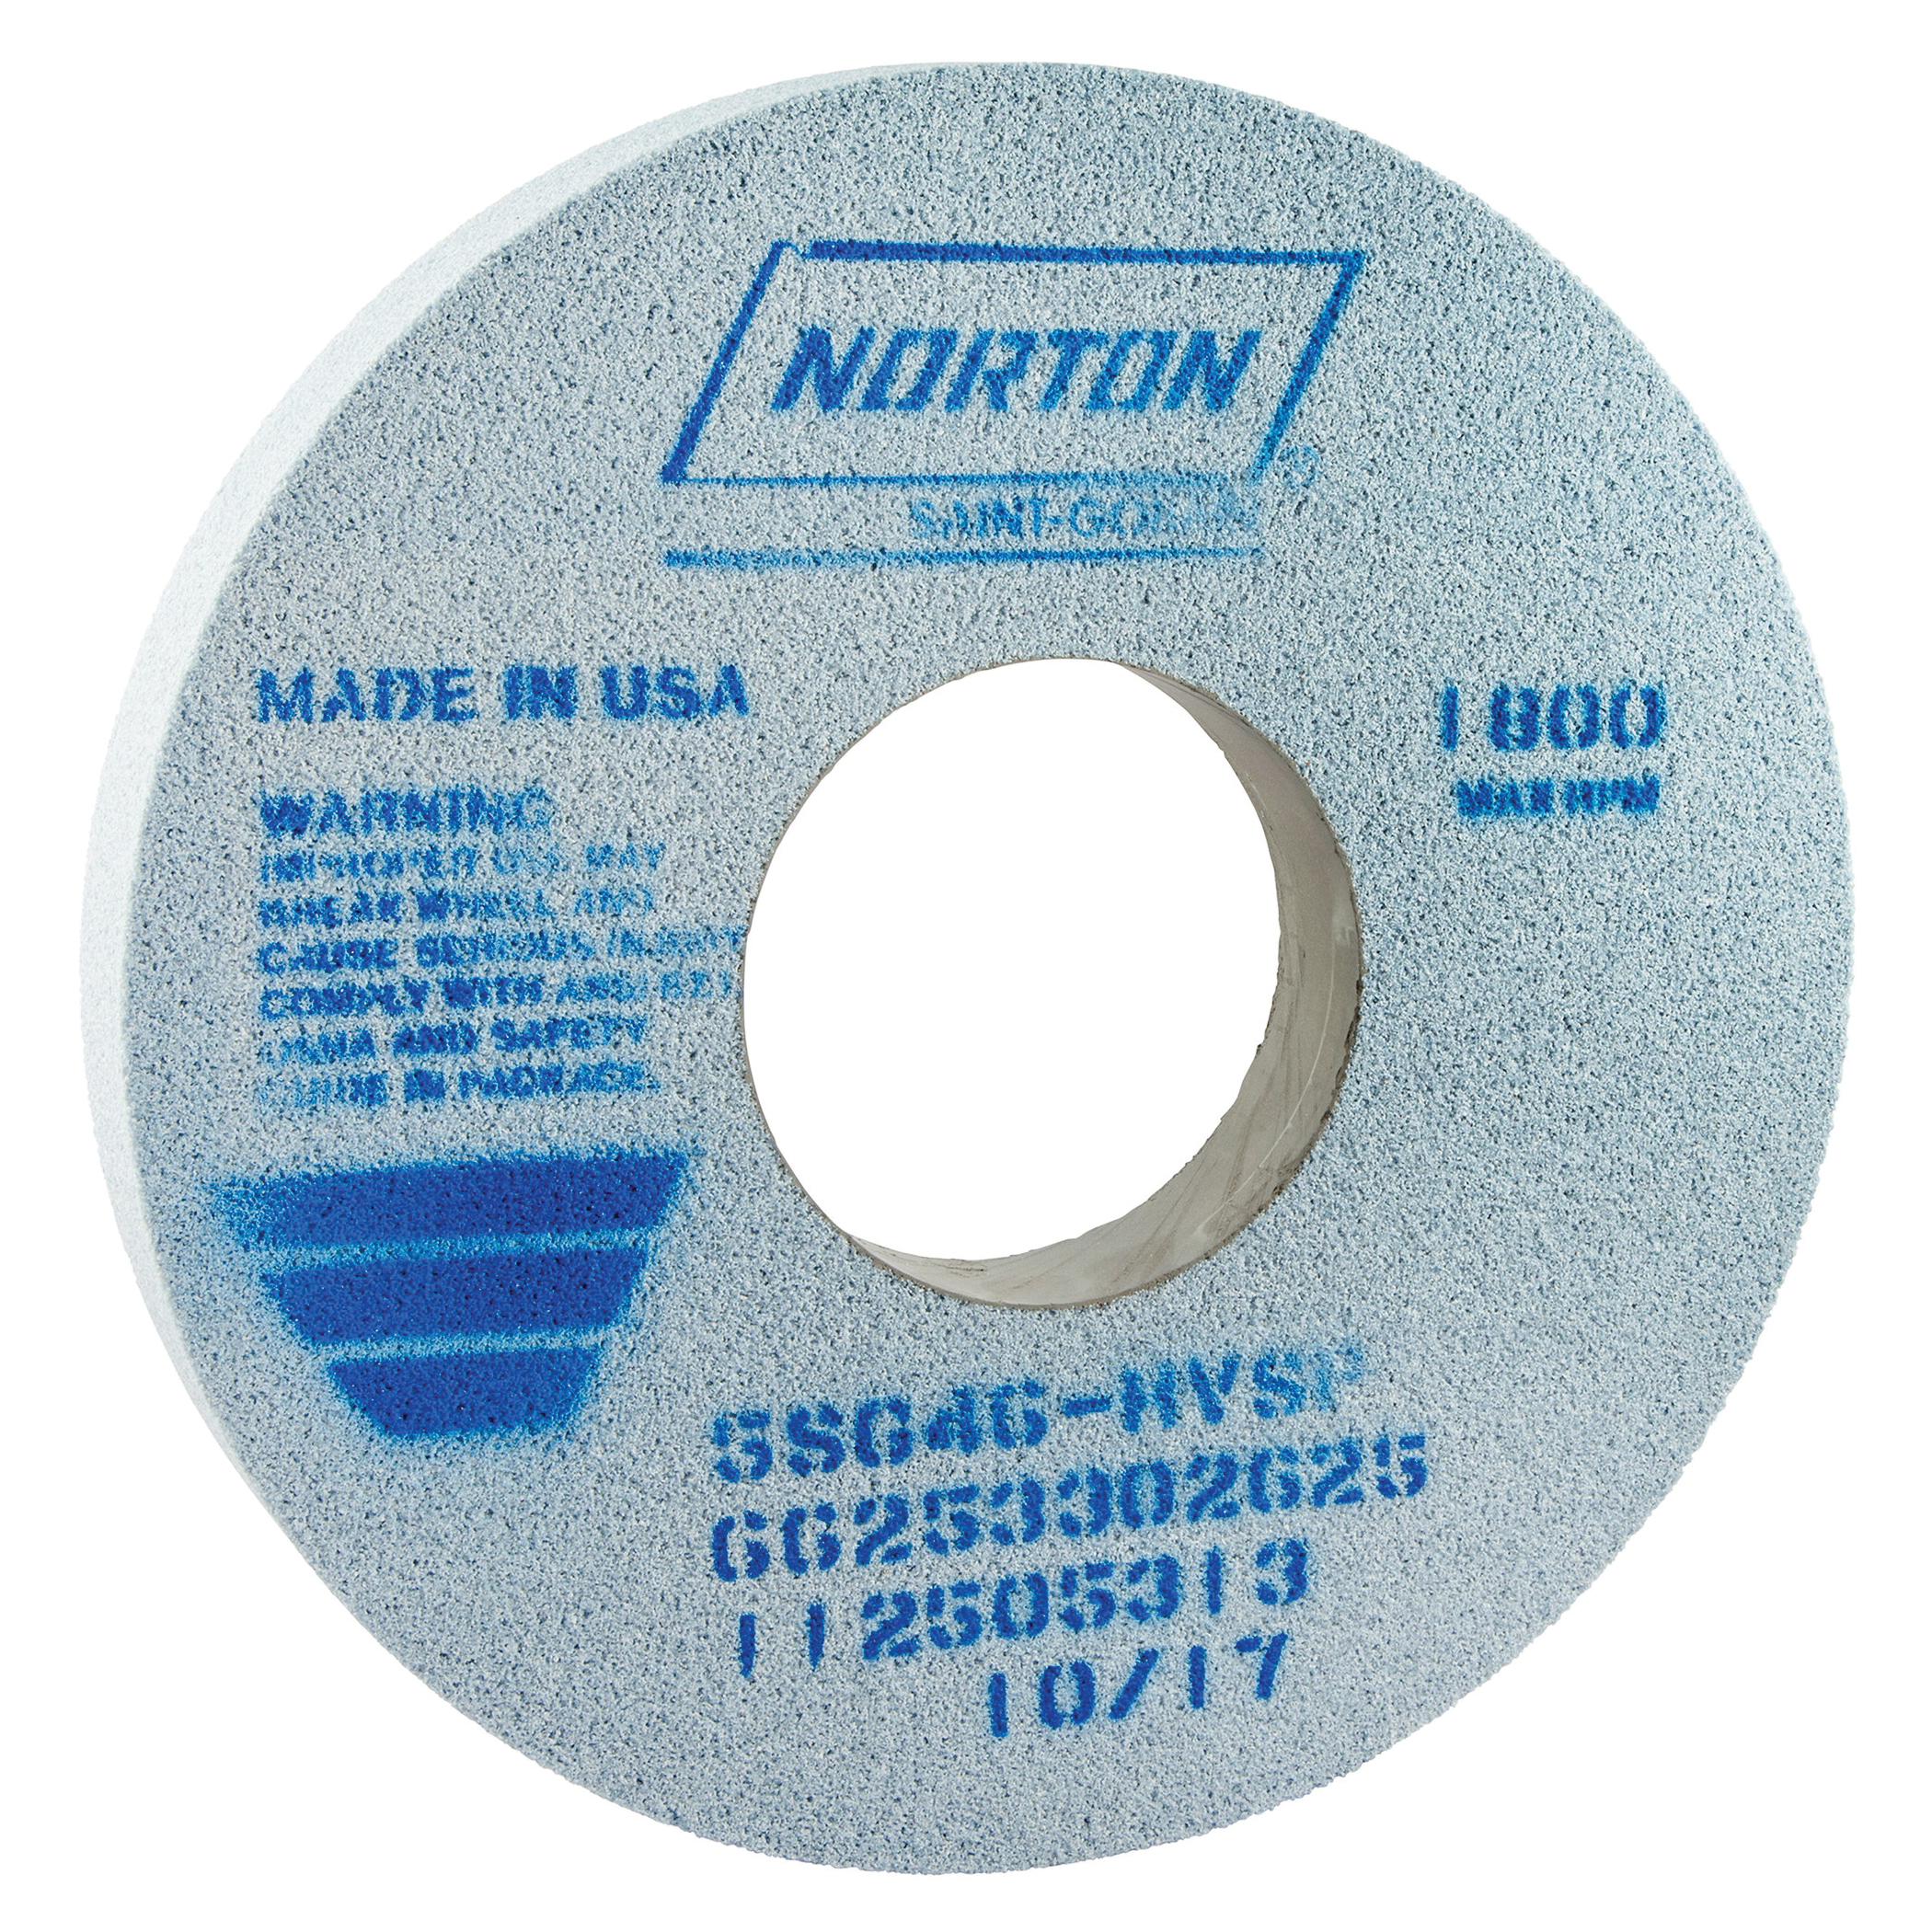 Norton® 66253302625 5SG Straight Toolroom Wheel, 14 in Dia x 1-1/2 in THK, 5 in Center Hole, 46 Grit, Ceramic Alumina/Friable Aluminum Oxide Abrasive